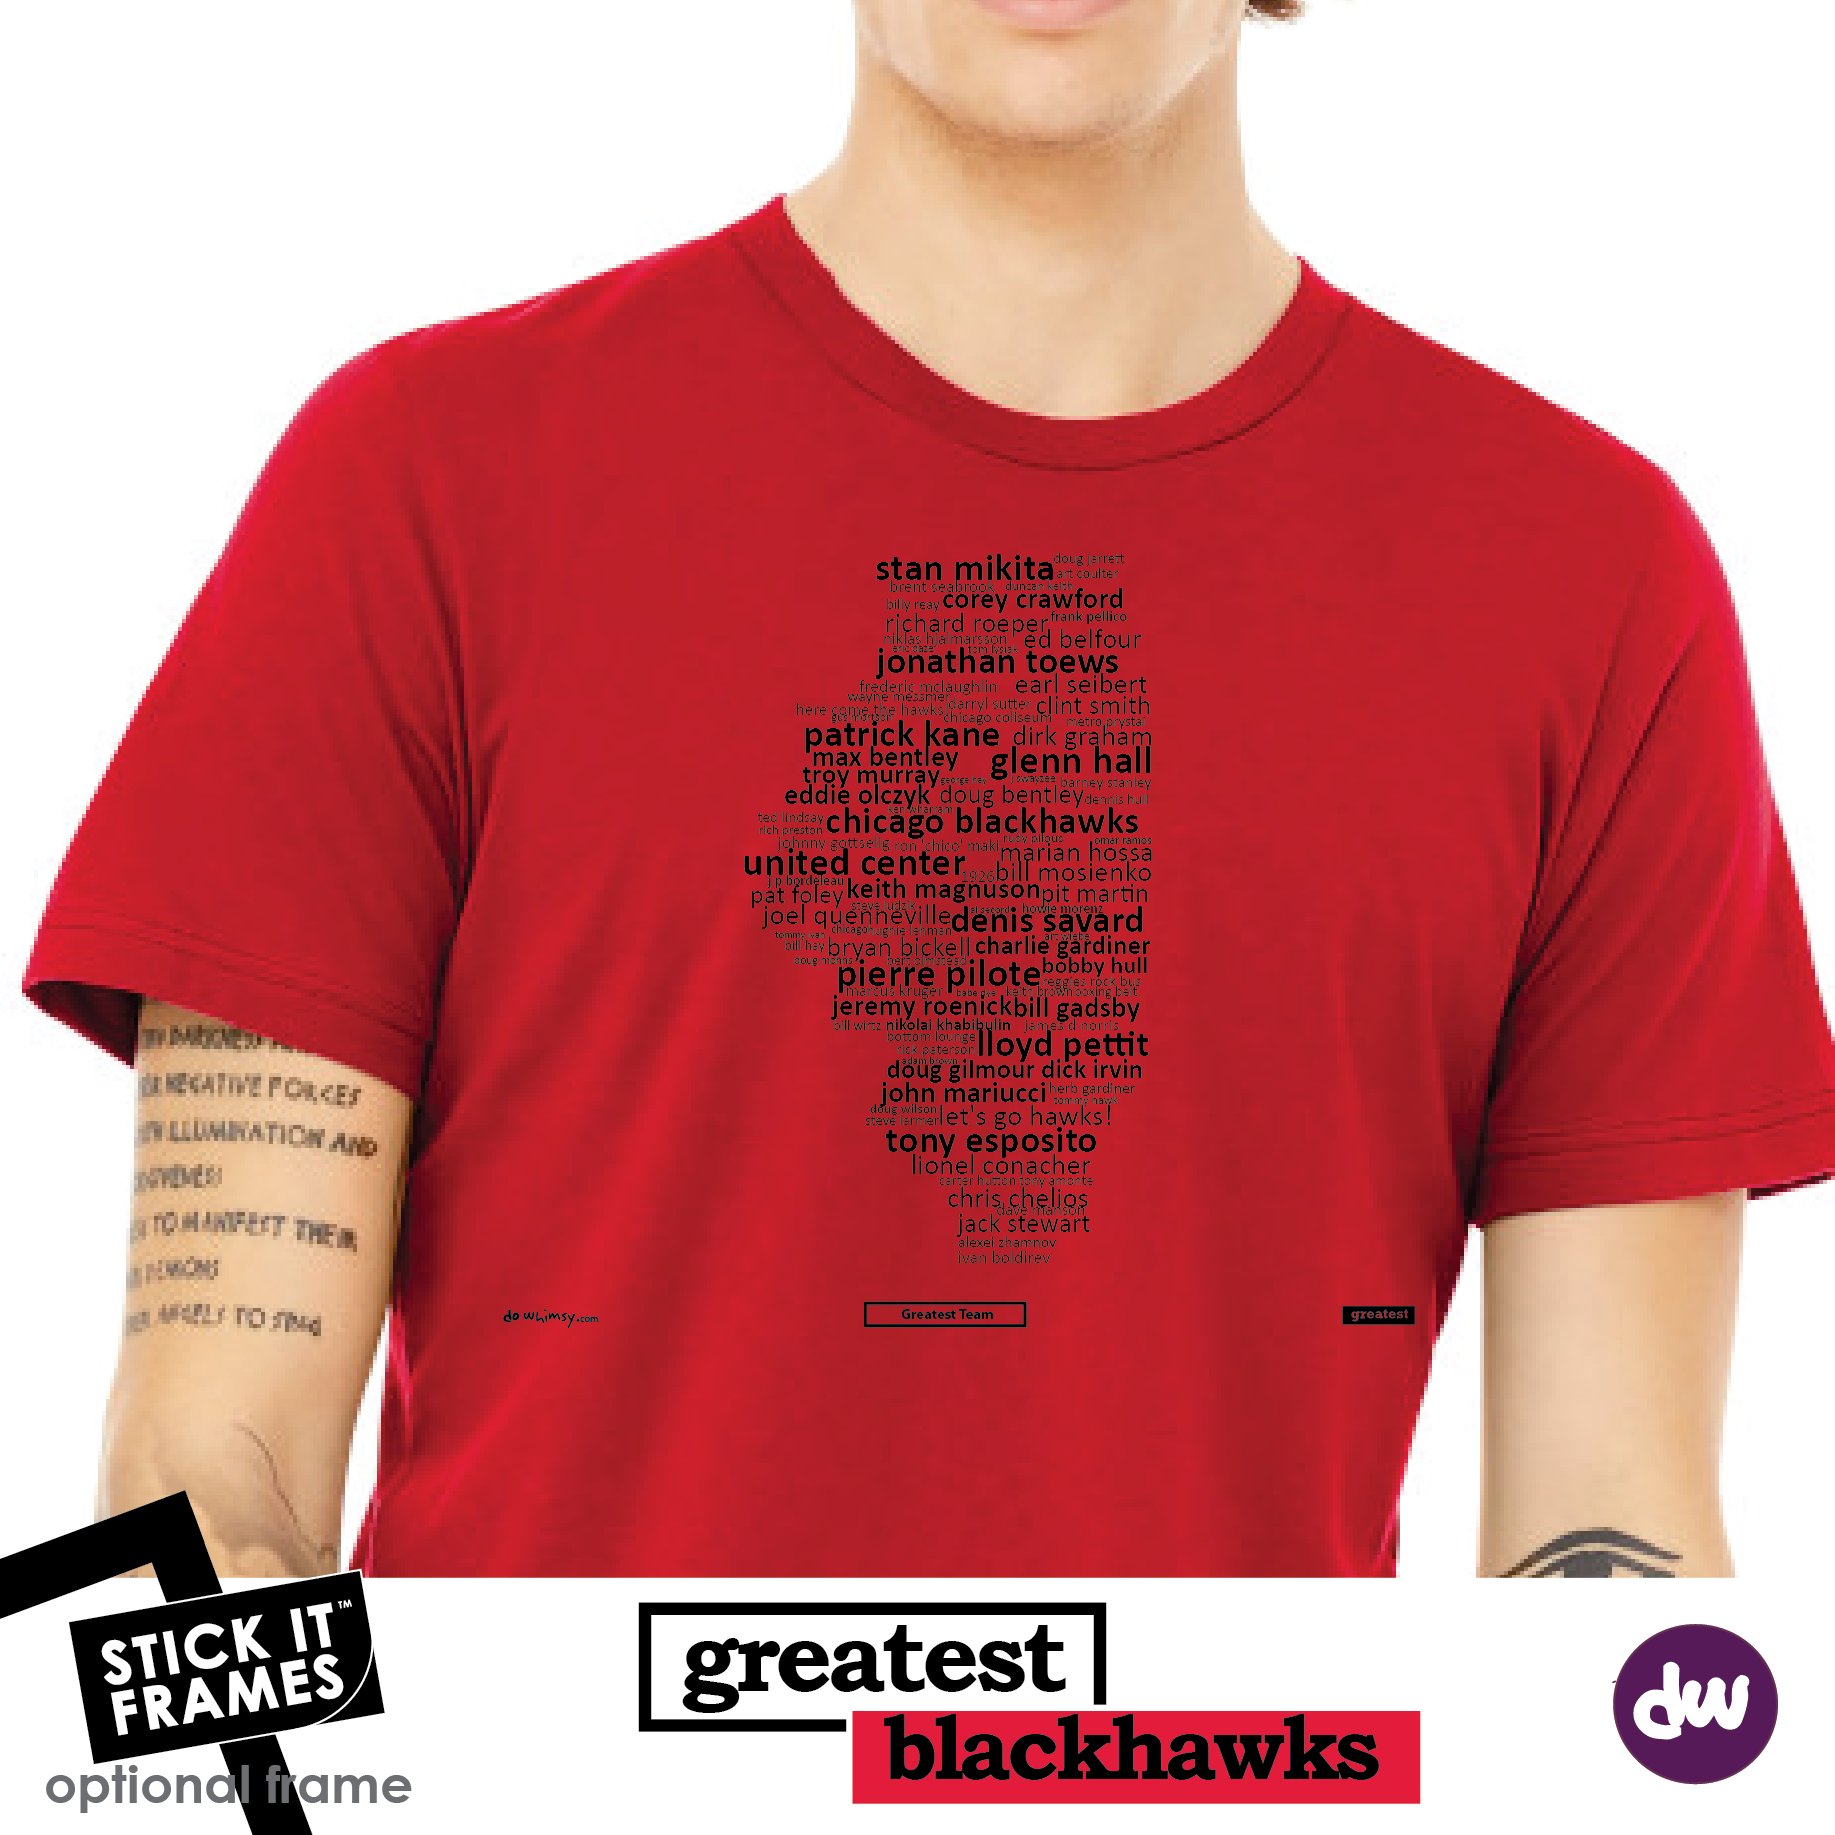 Greatest Illinois (Blackhawks) - All Products (Shirt, Art, Frames (R))